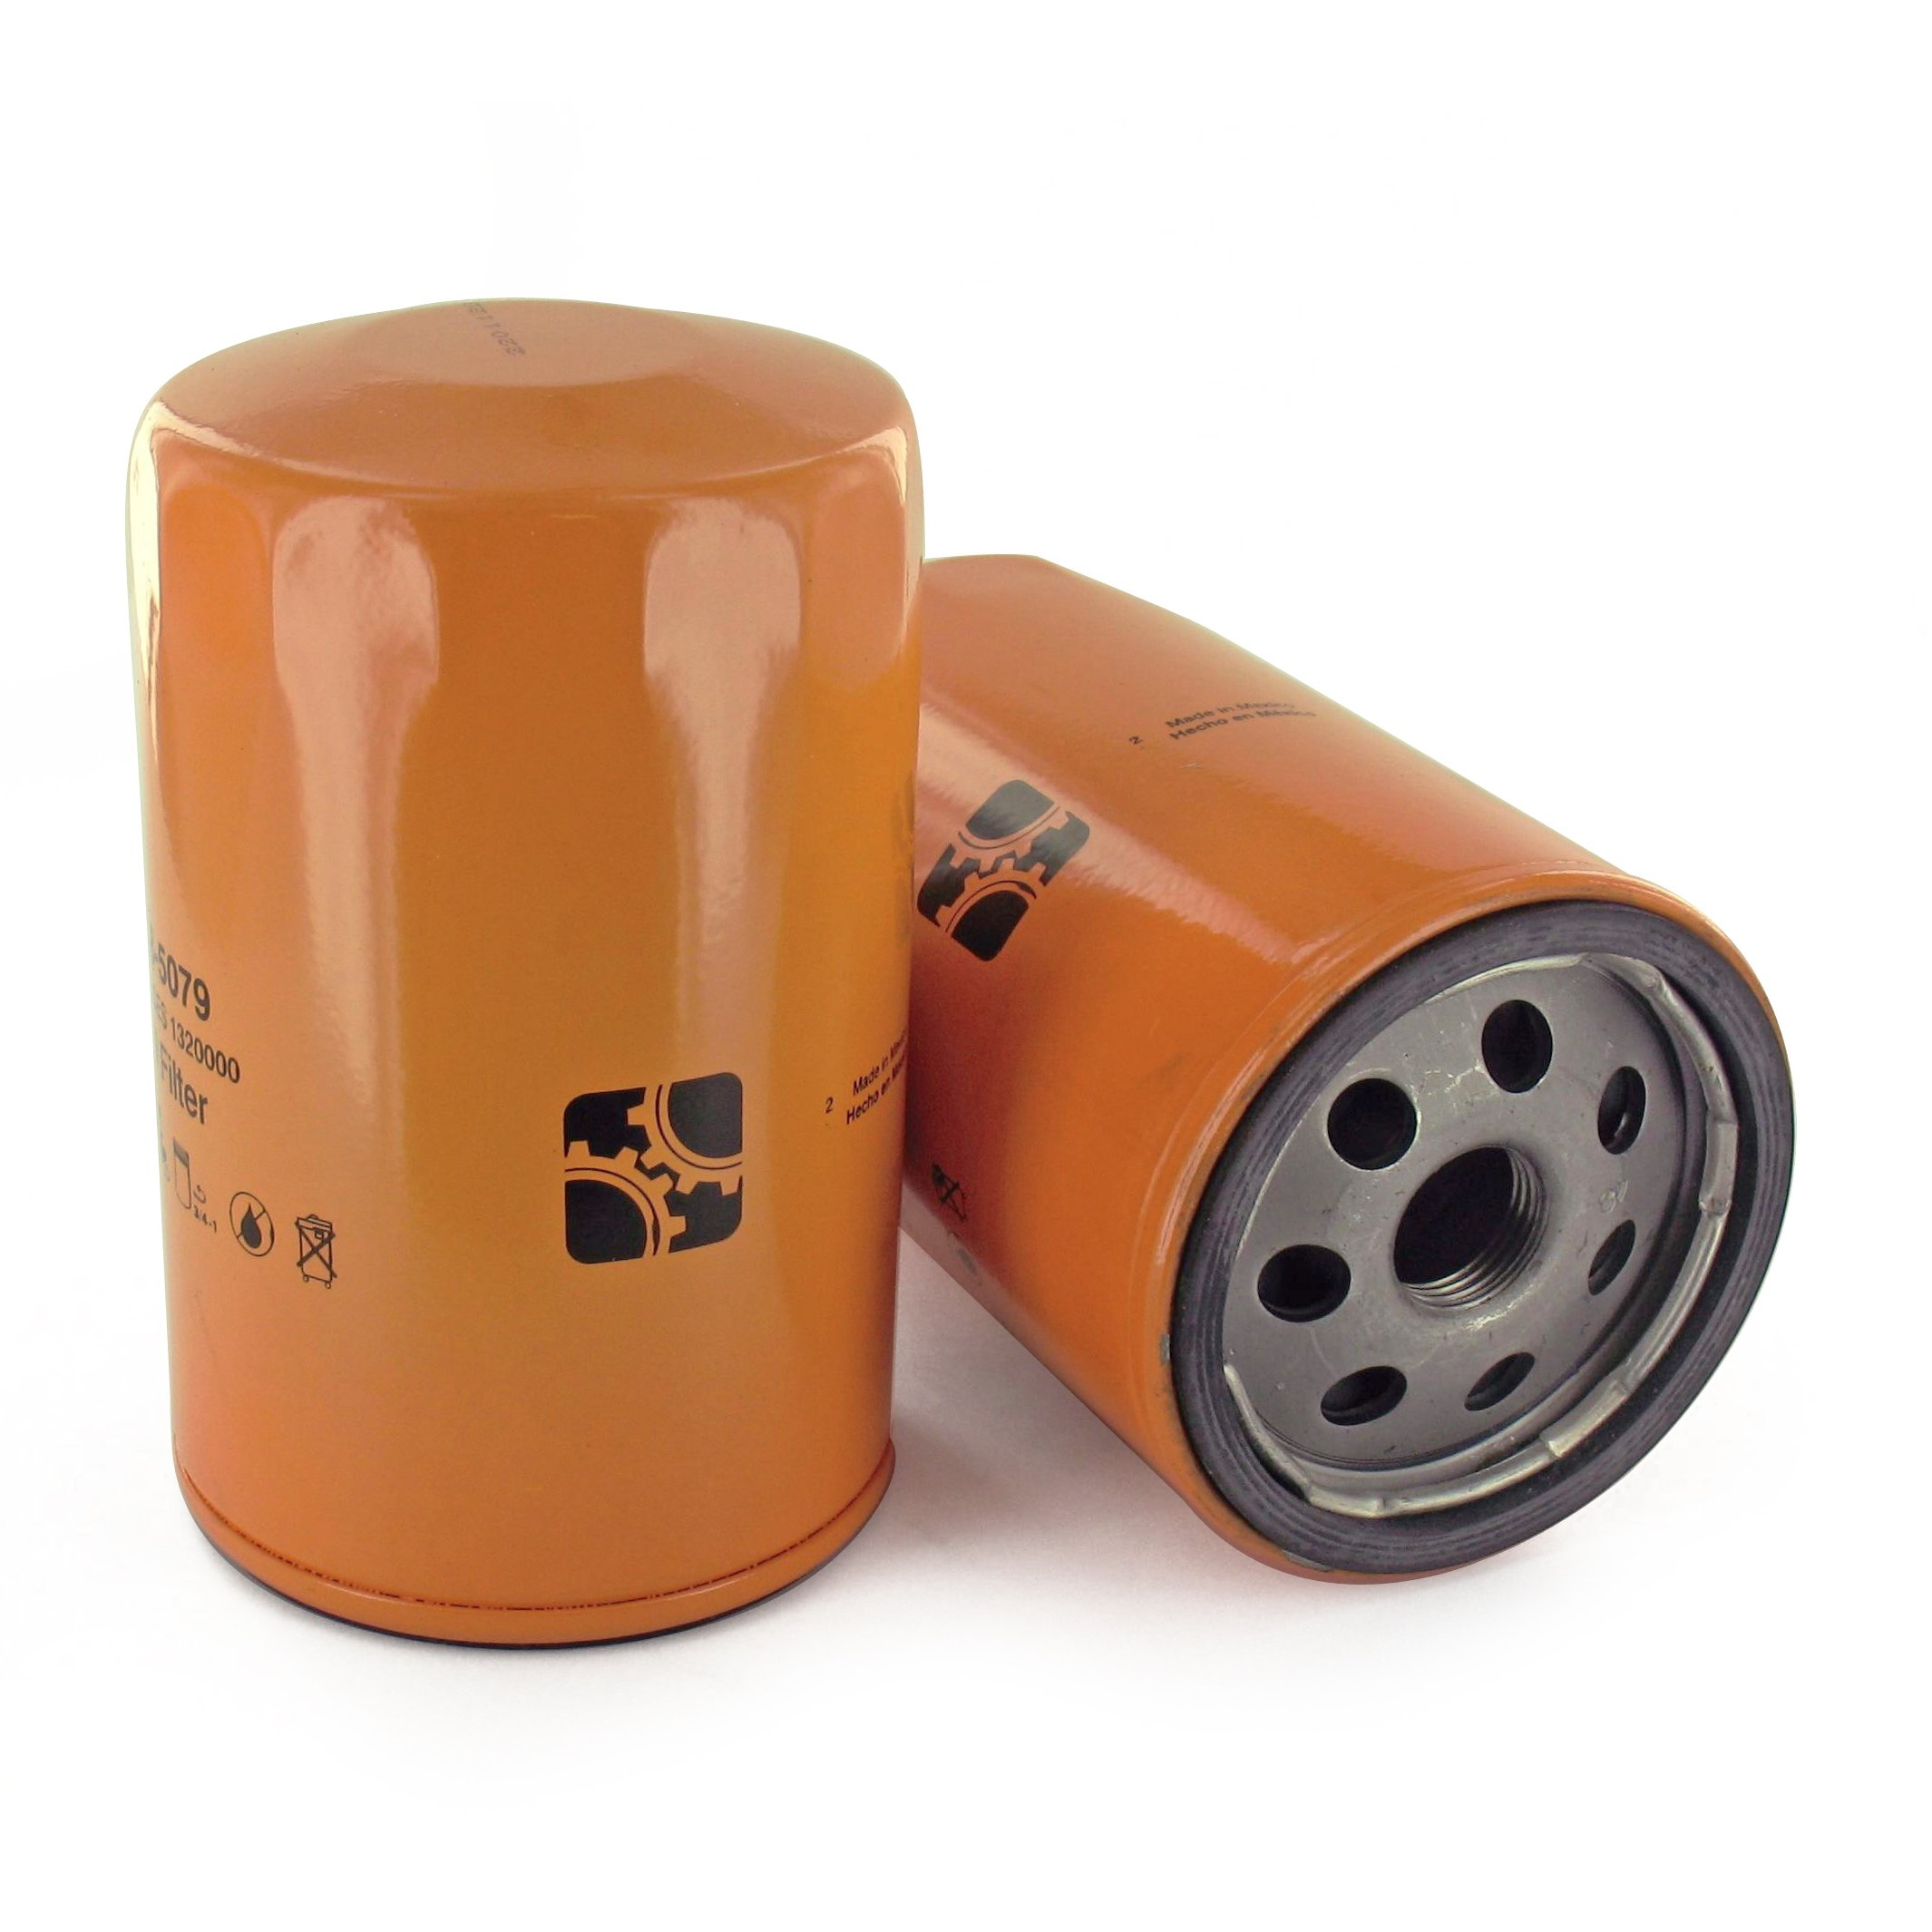 Hyster 1320000 Oil Filter For Forklifts with GM 4.3L Engine